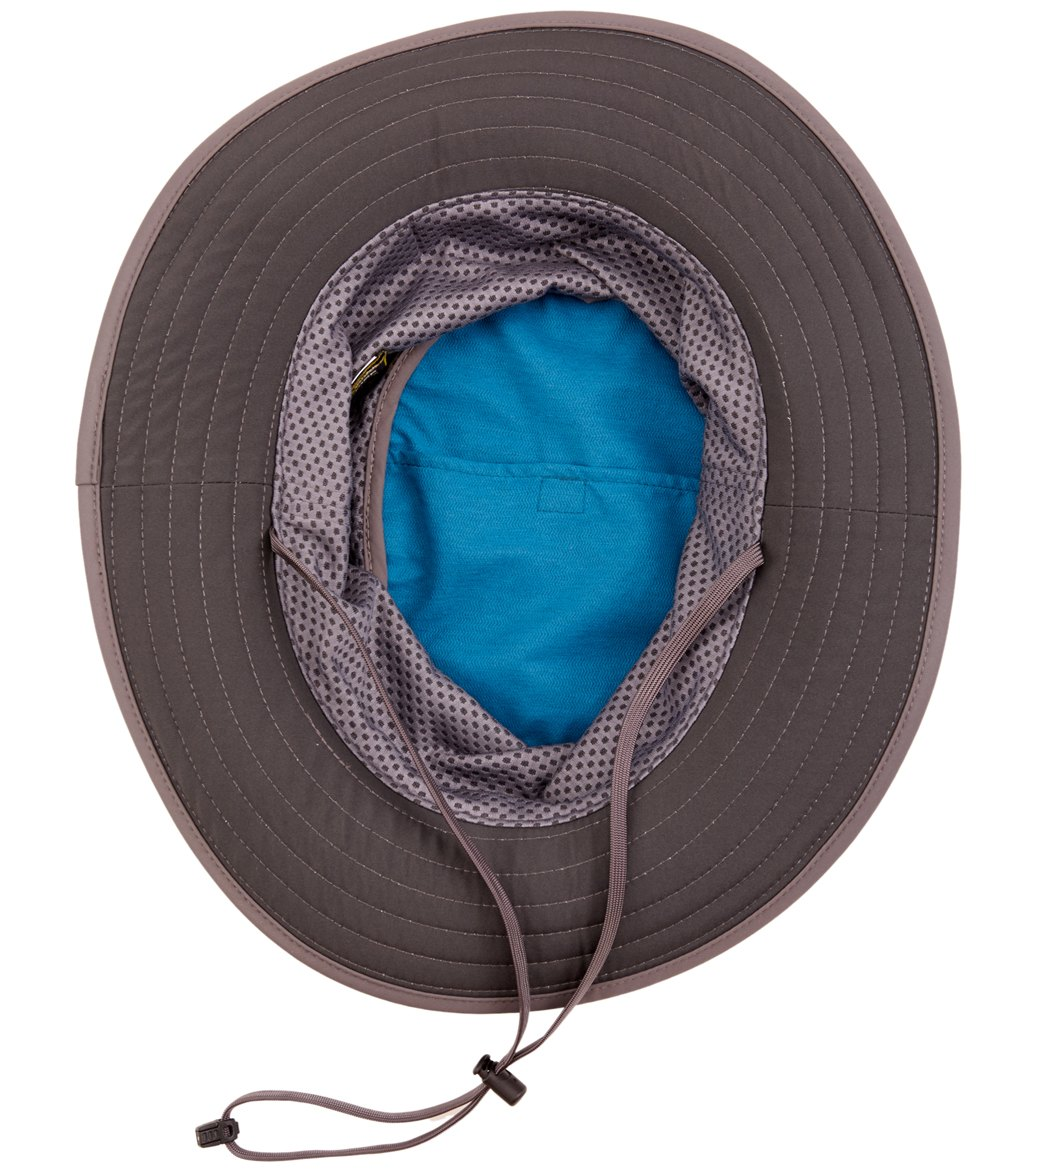 Sunday Afternoons Men s Trailhead Boonie Hat at SwimOutlet.com 38ad30f55bc6